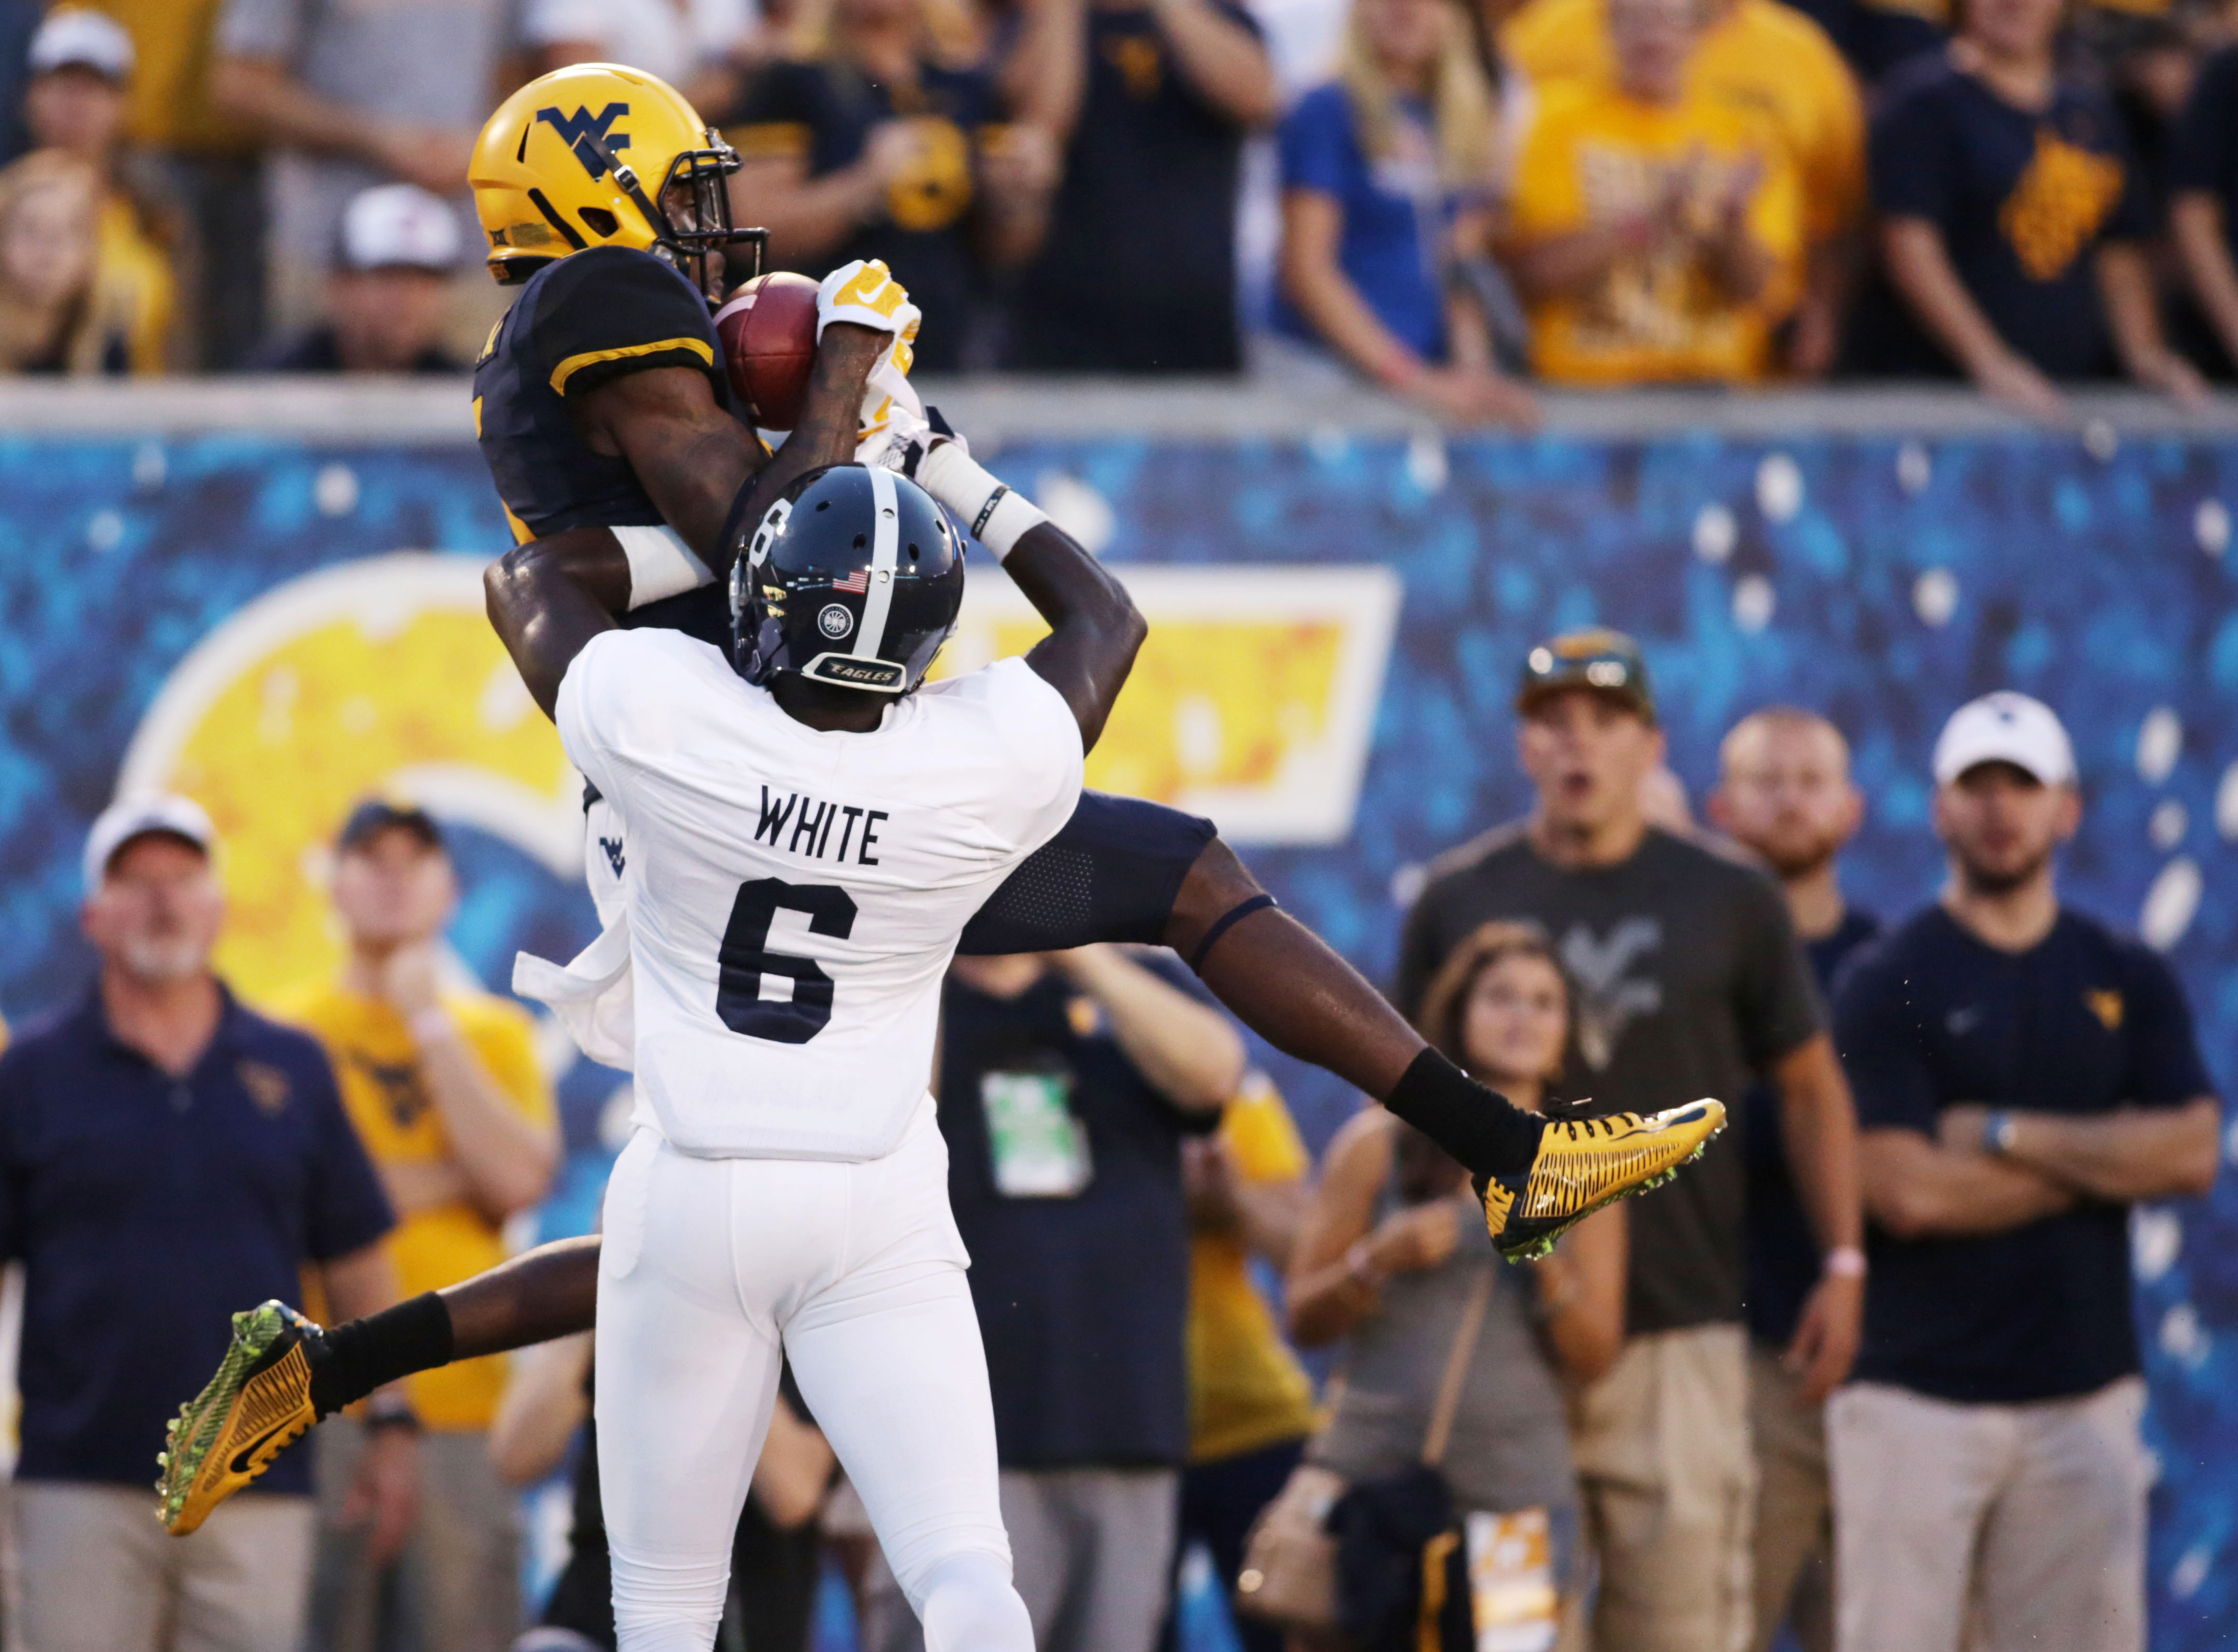 West Virginia wide receiver Jovon Durante, top, makes a catch for a touchdown while being defended by Georgia Southern cornerback Darrius White (6) in the first half of an NCAA college football game, Saturday, Sept. 5, 2015, in Morgantown, W.Va. (AP Photo